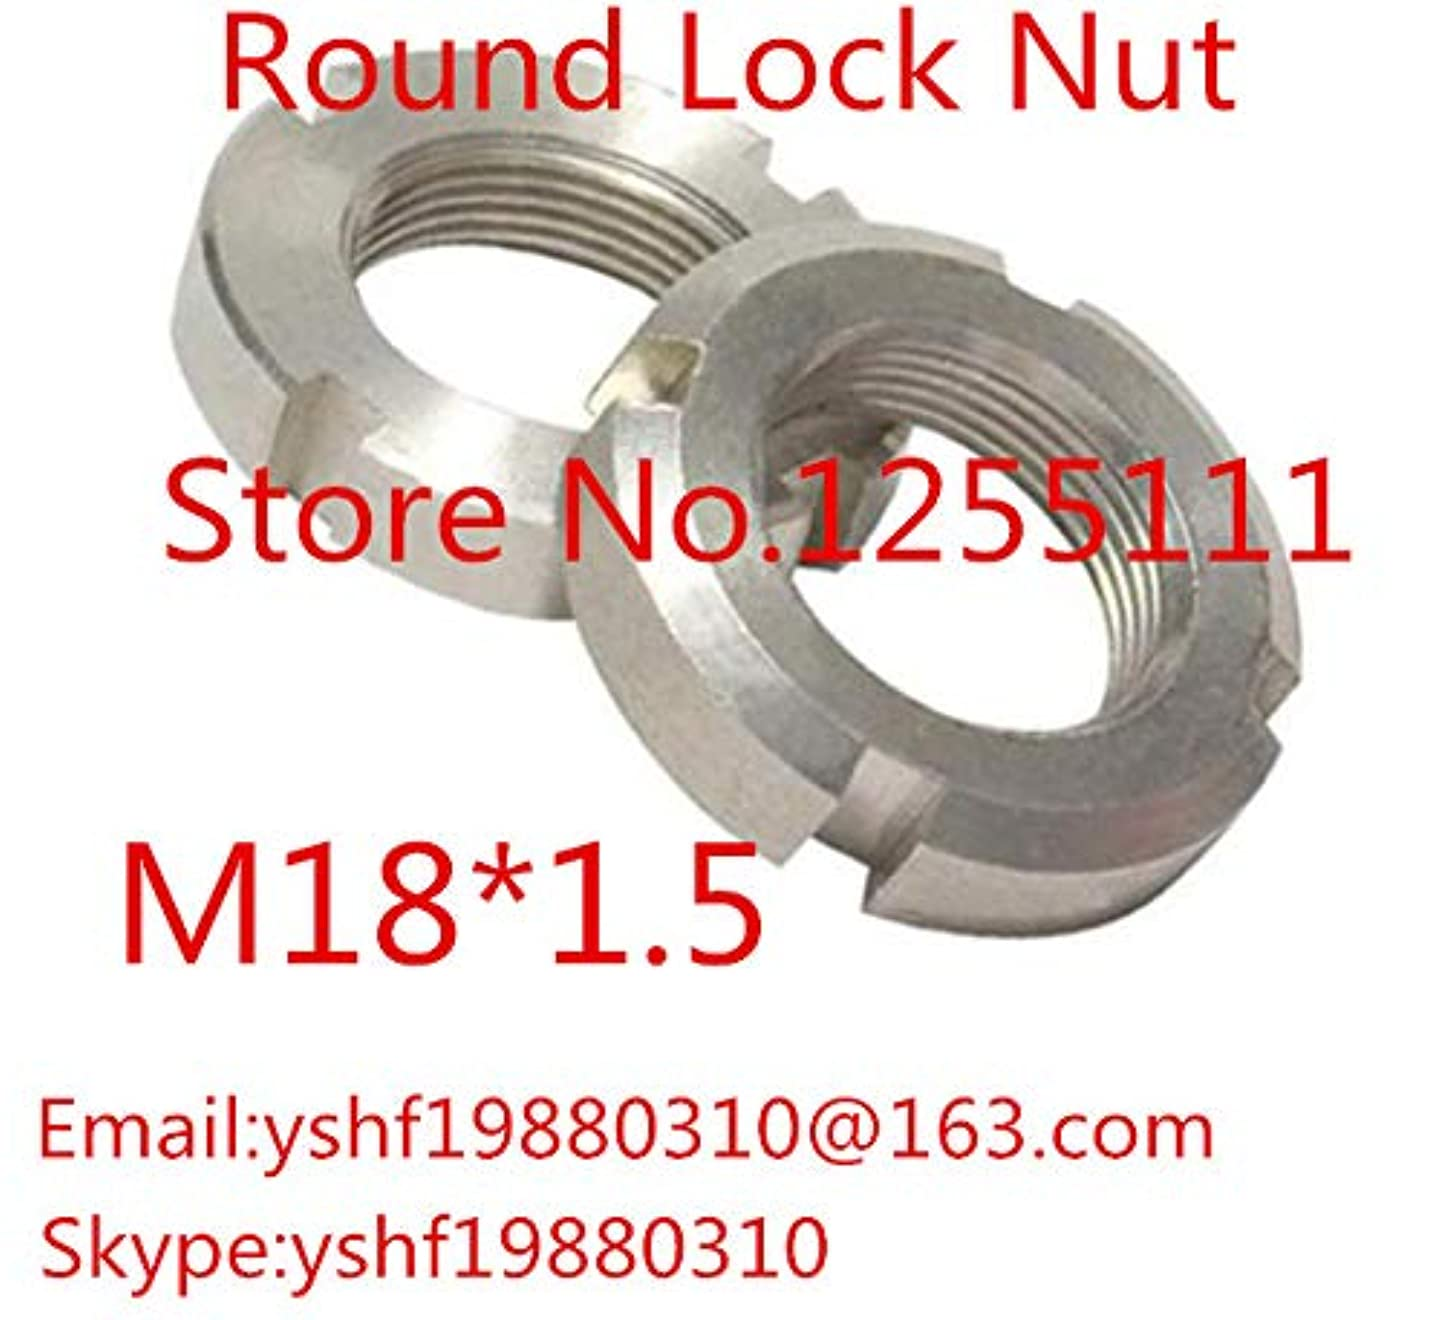 Nuts 2PCS M181.5 Stainless Steel Round nut 304 Four-Slot nut Slotted nut retaining nut